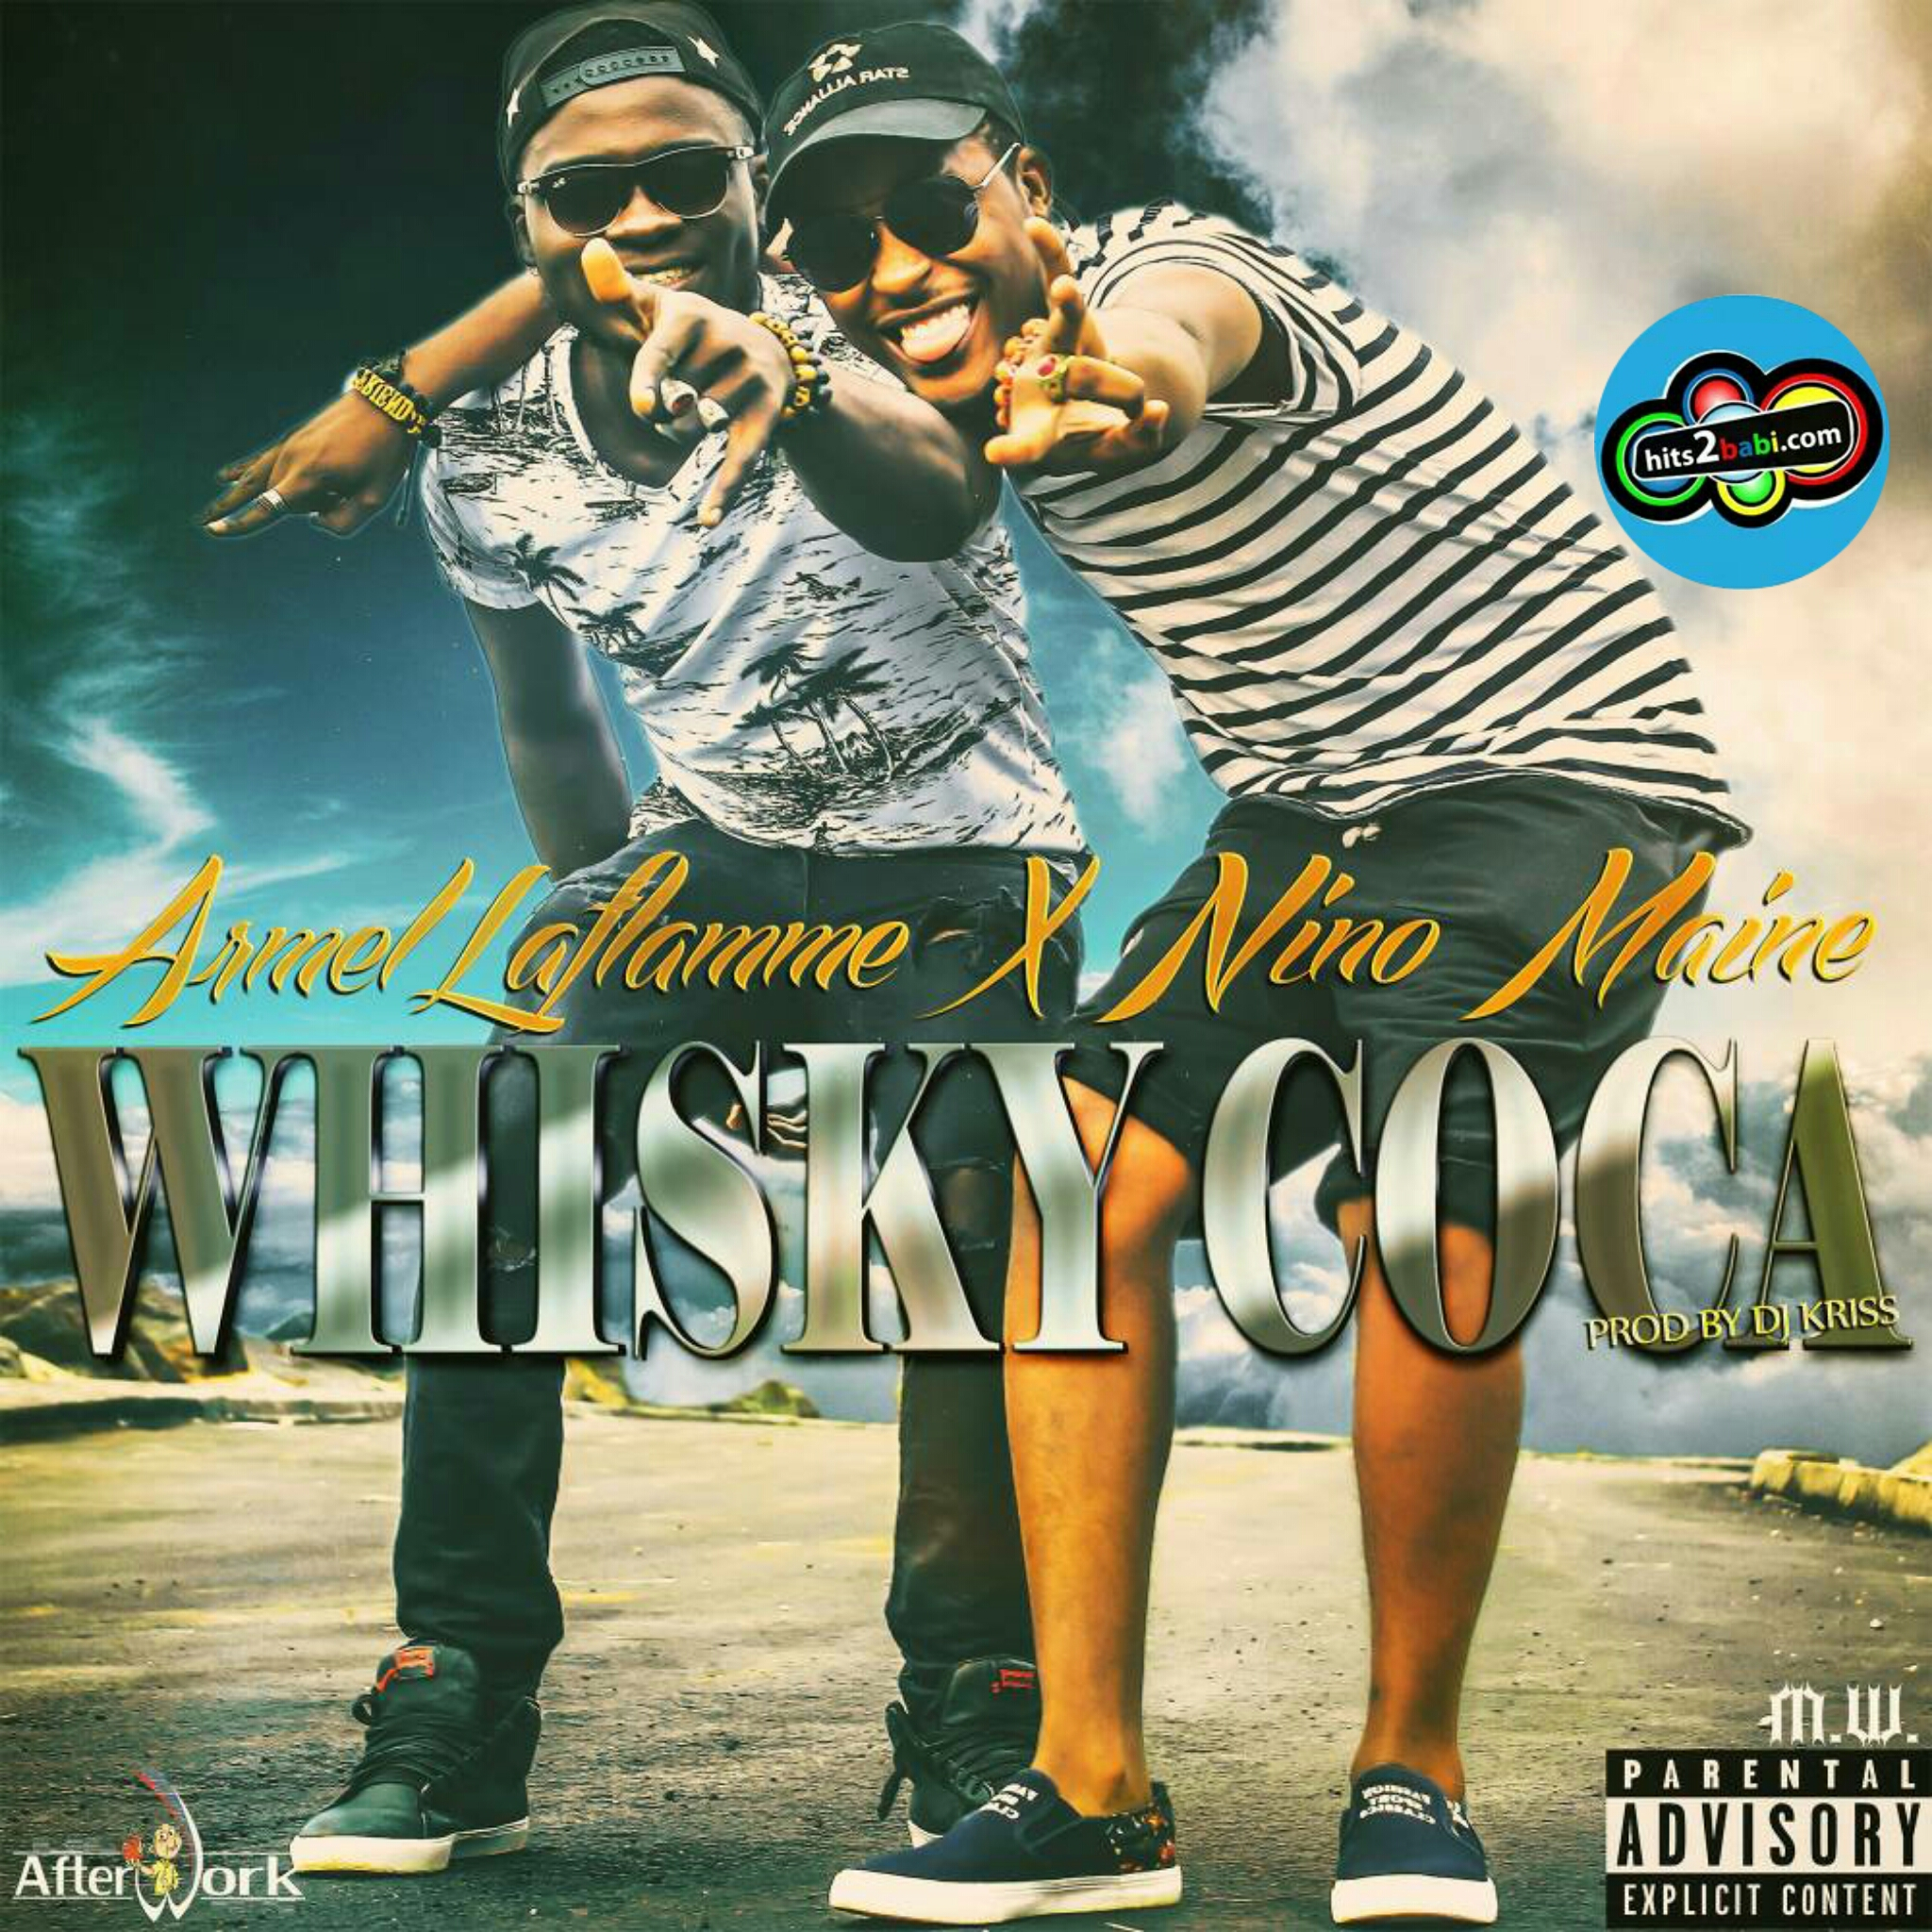 ARMEL LAFLAMME FEAT NINO MAINE - WHISKY COCA